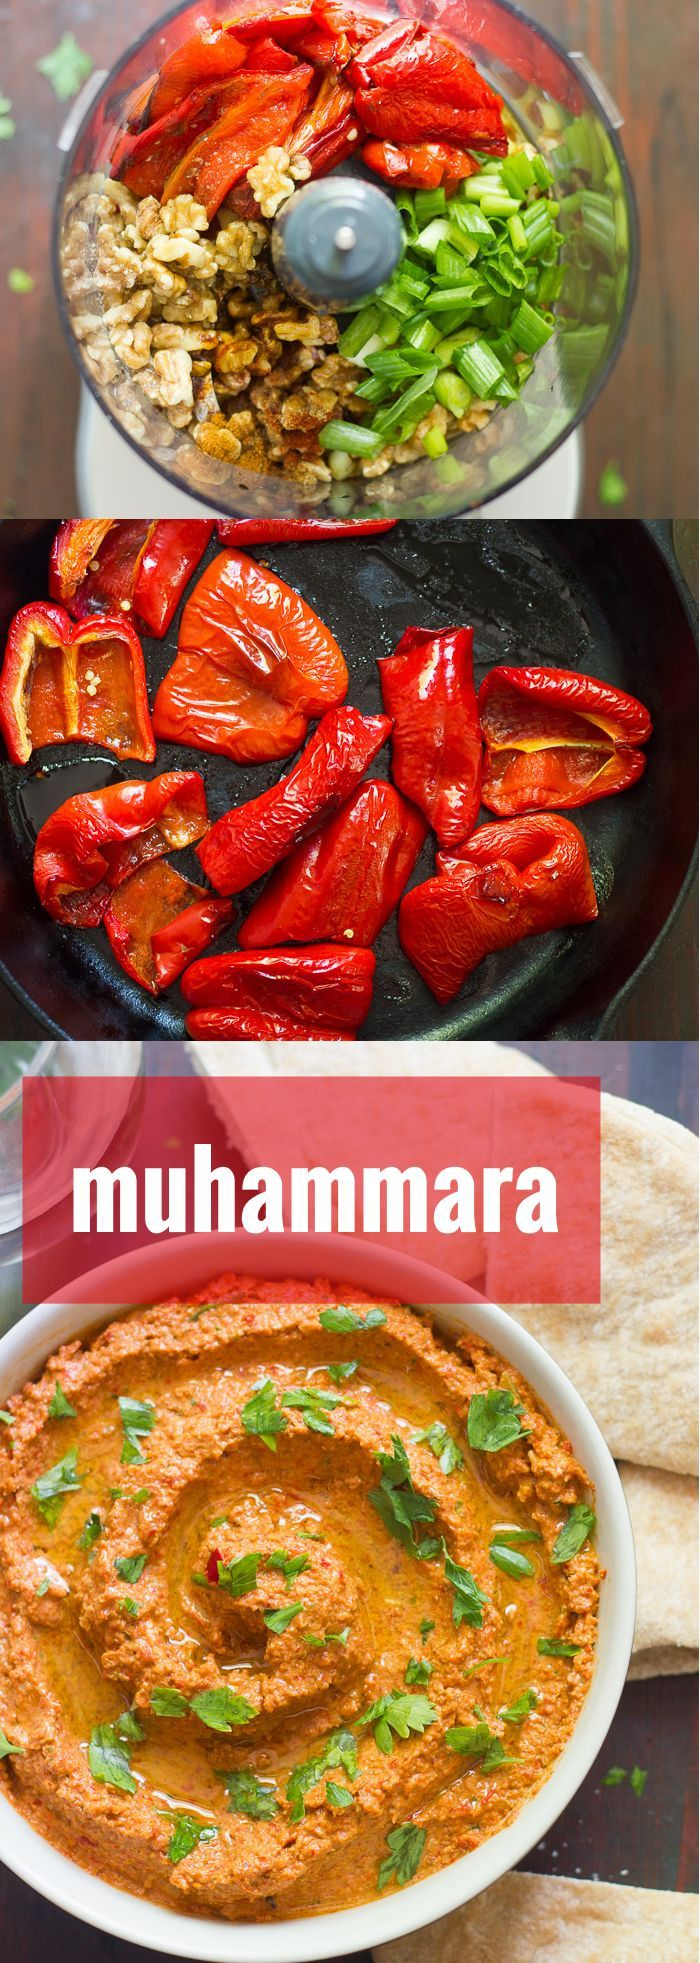 Muhammara (Roasted Red Pepper & Walnut Dip). A smoky sweet mixture of roasted re…